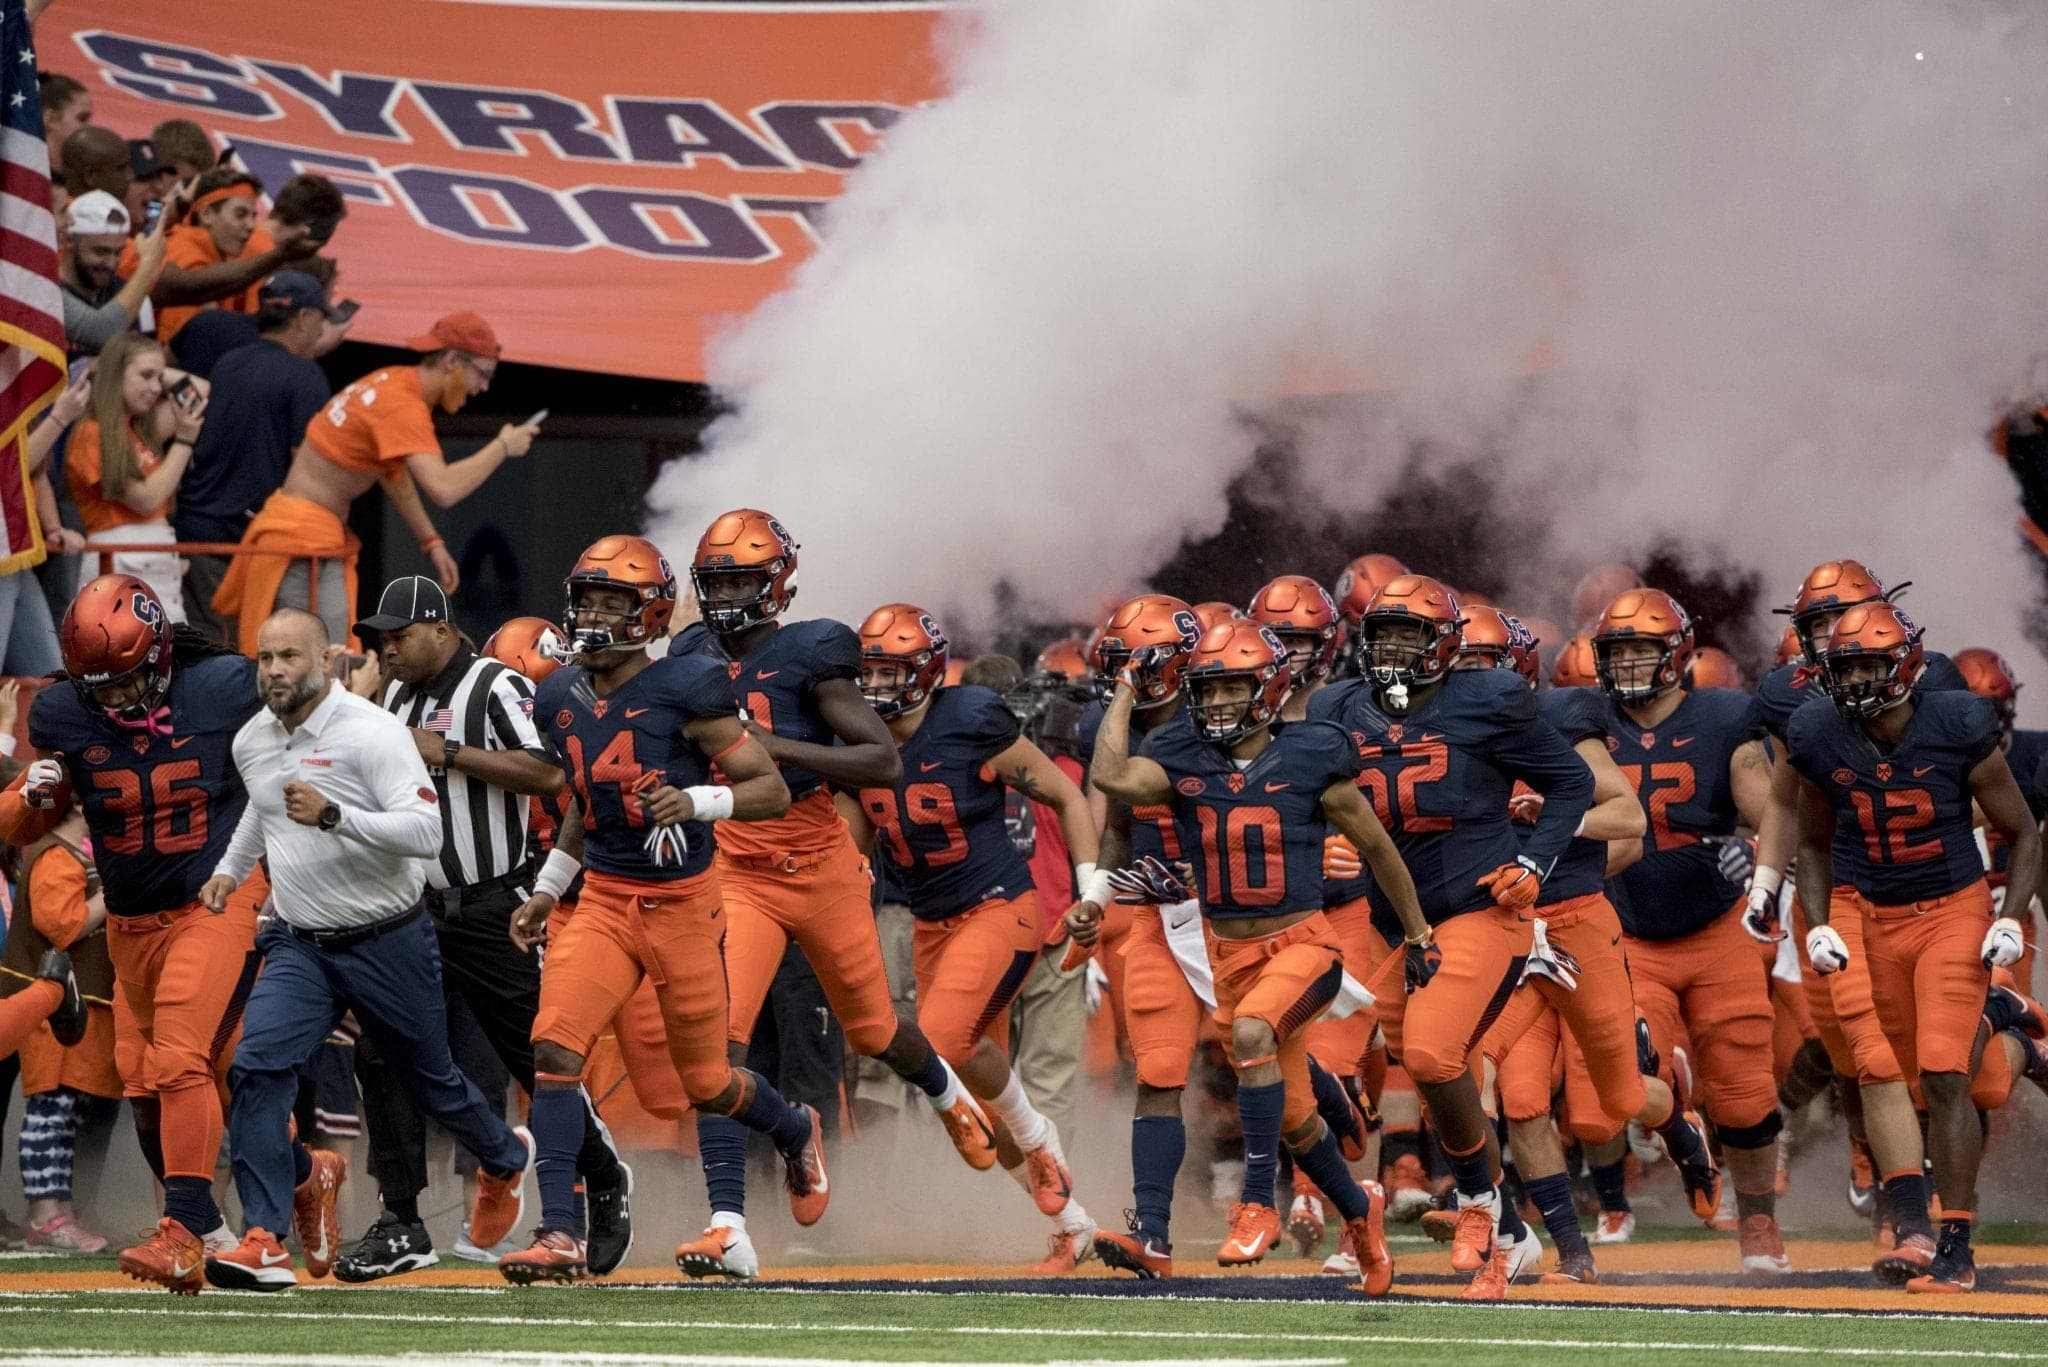 Football: Syracuse vs. Wagner